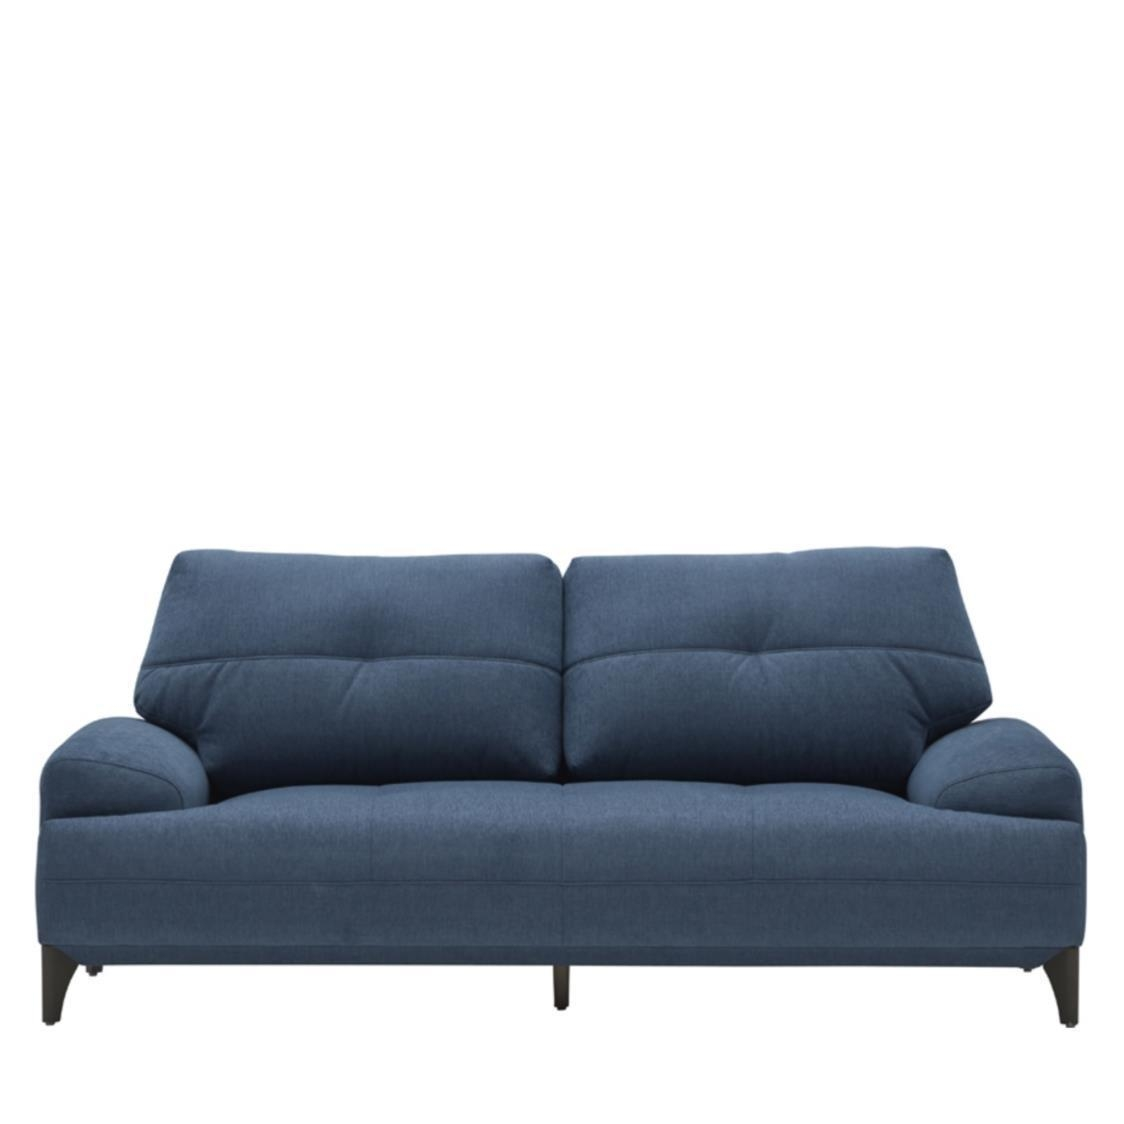 Iloom Boston Fabric Sofa 2R4 Washed Denim